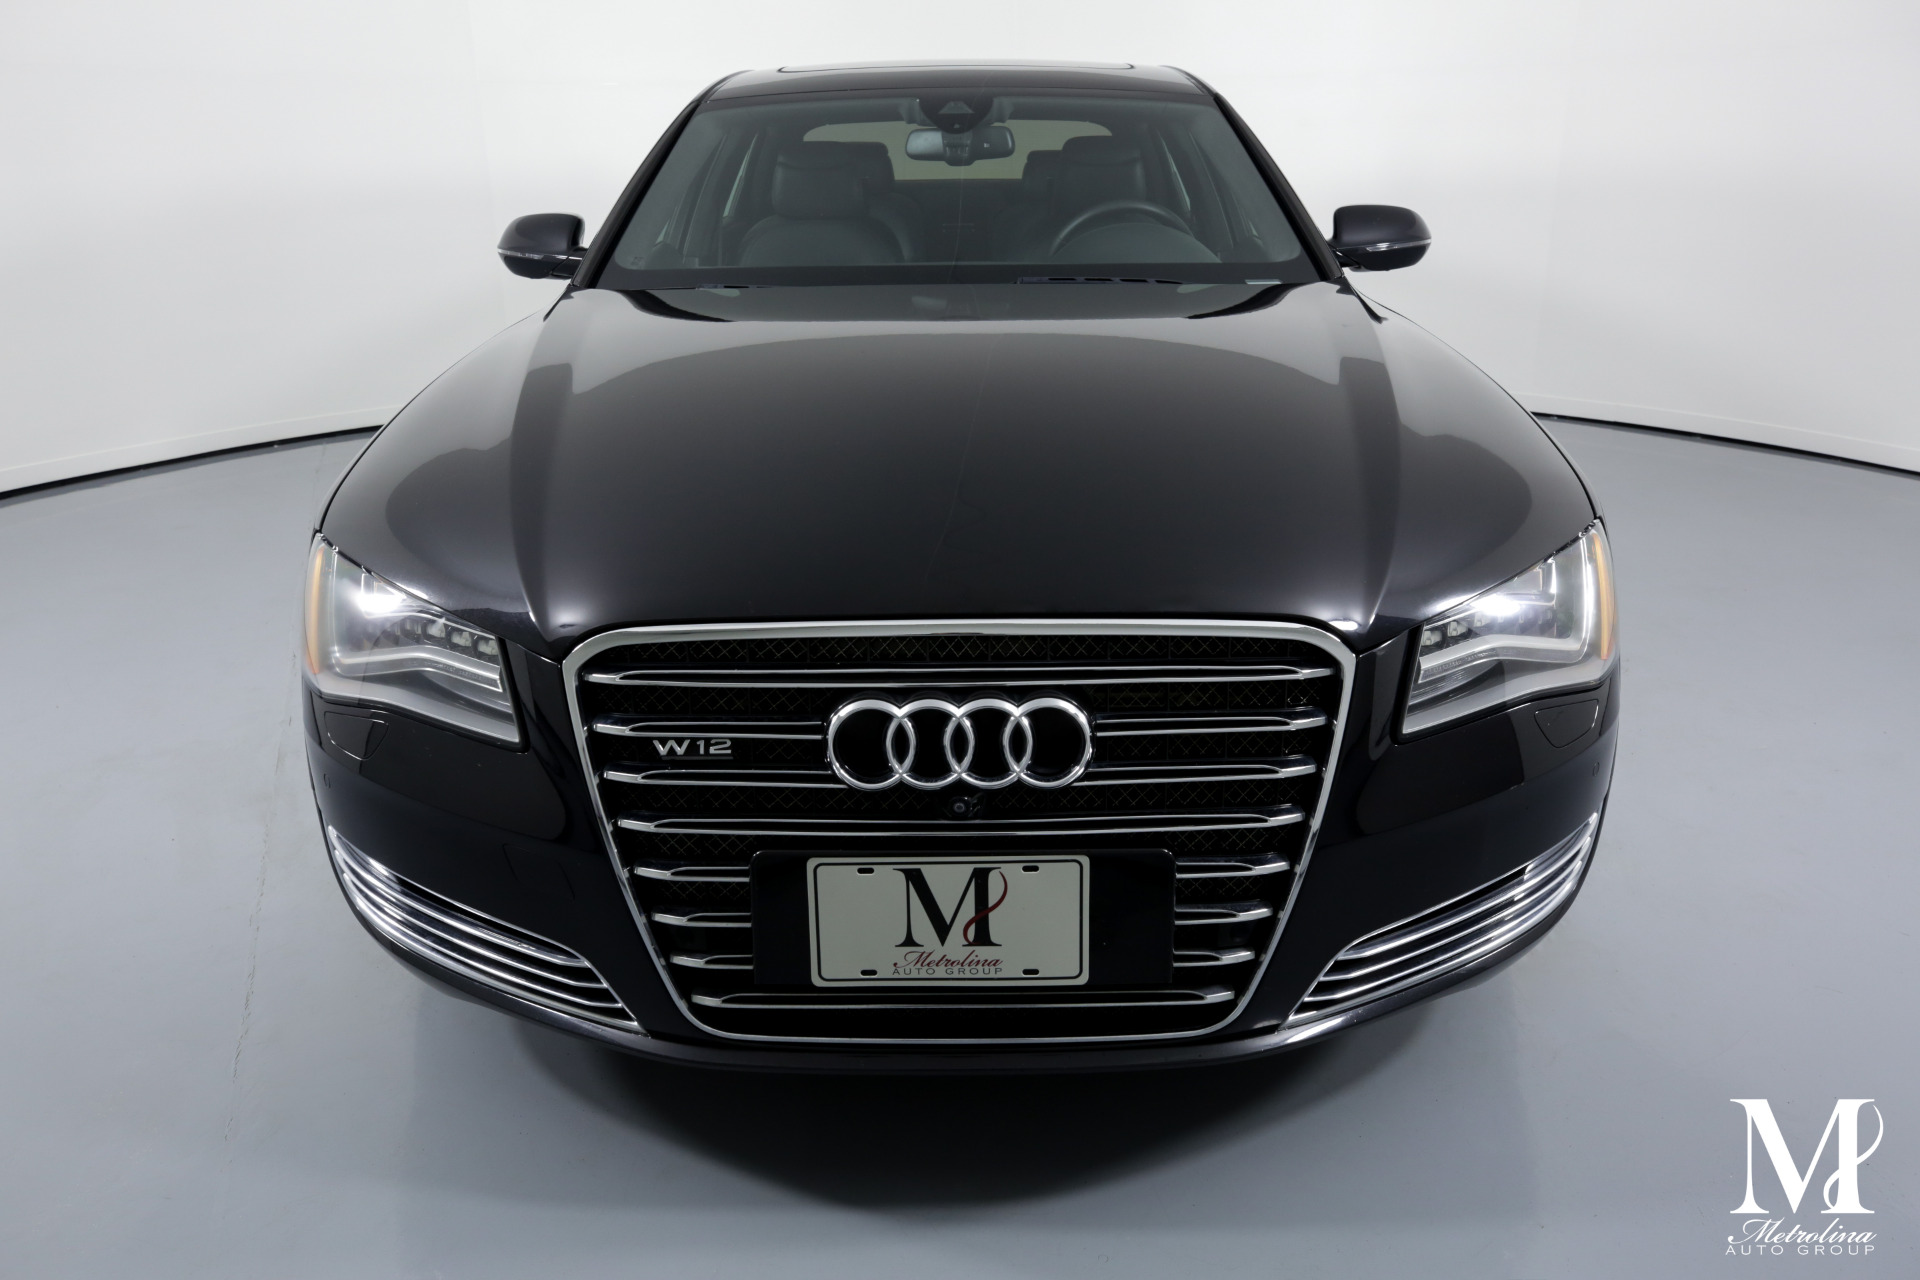 Used 2013 Audi A8 L W12 quattro for sale $37,596 at Metrolina Auto Group in Charlotte NC 28217 - 3